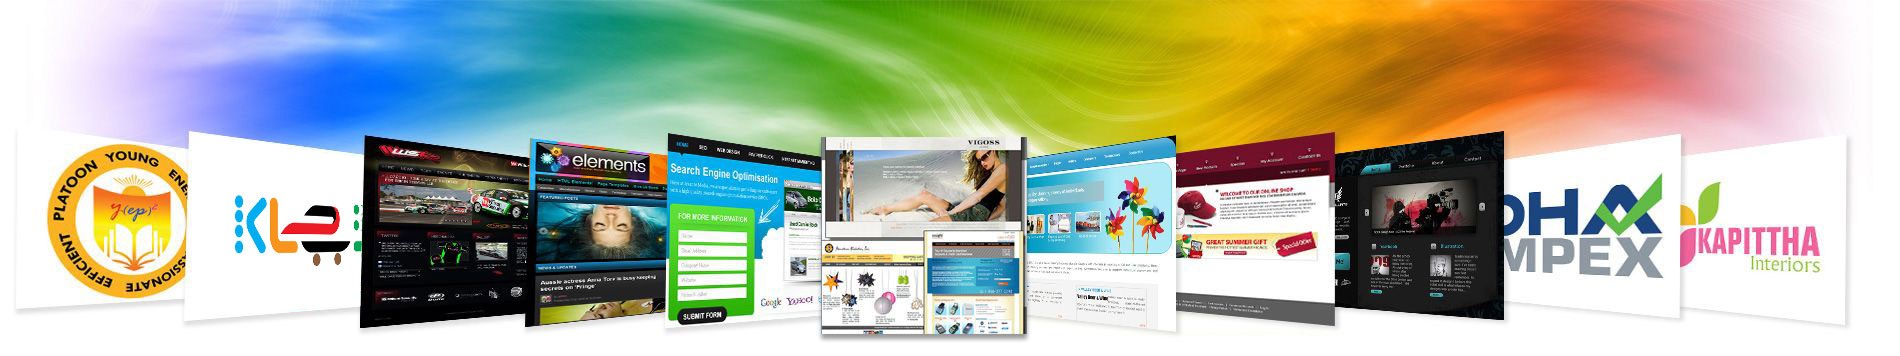 wordpress theme design, html css expert india, wordpress portfolio india, php freelance india, Website design and development portfolio, Wordpress Template Design, website portfolio, website design portfolio, web design portfolio in Wordpress, wordpress website redesign portfolio, wordpress dynamic website development, wordpress site development in hyderabad, wordpress blog development in hyderabad, wordpress ecommerce website development